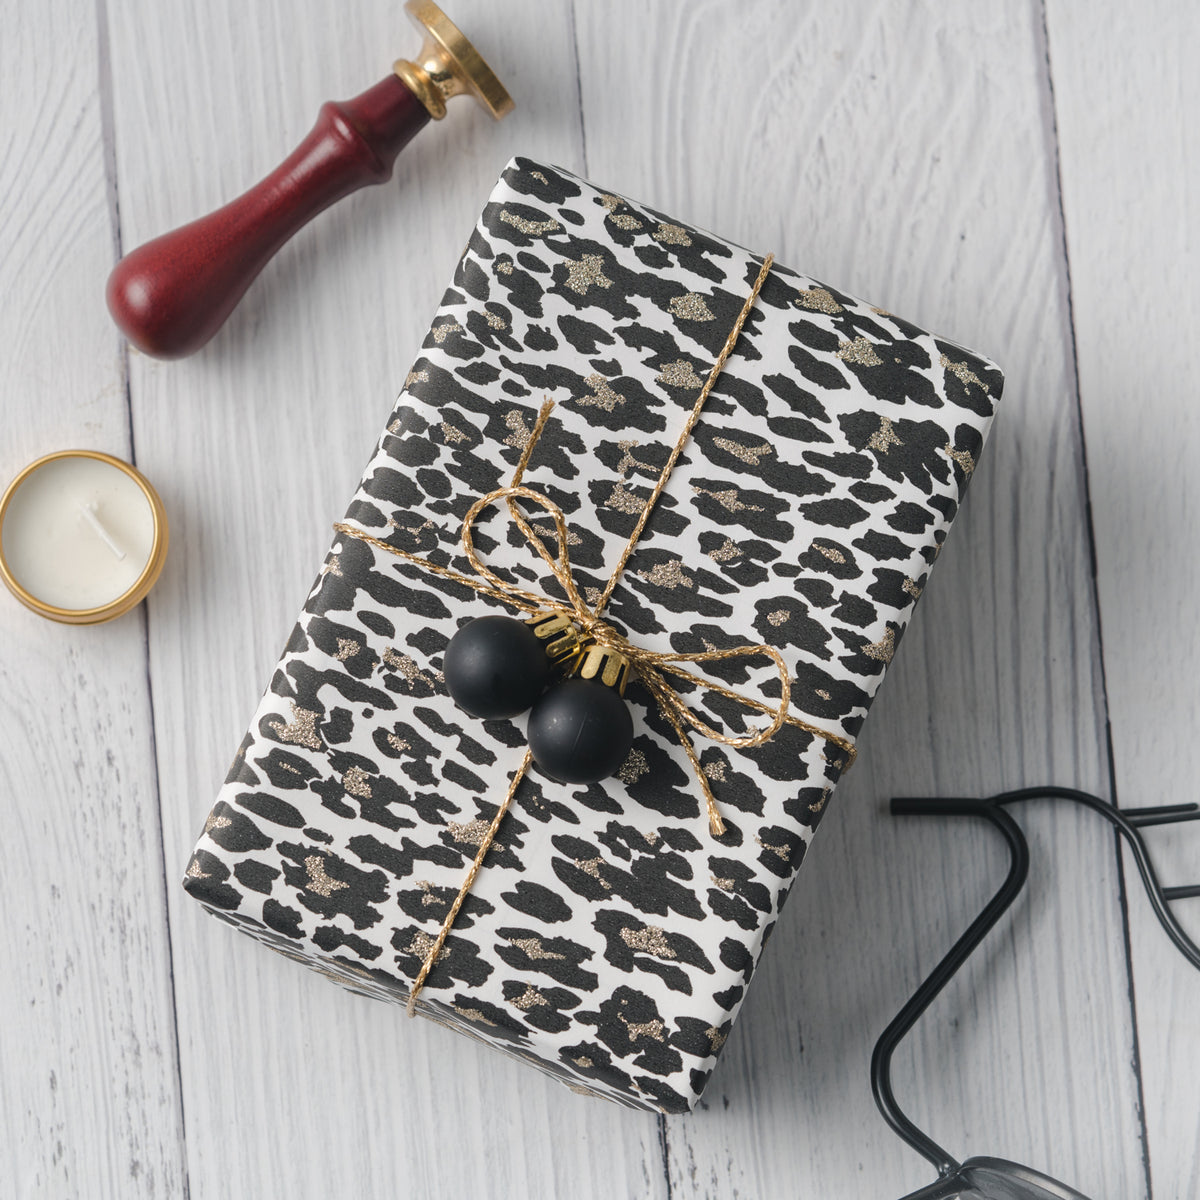 Wrapaholic-Glitter-Design- with-Leopard-Printing-Gift-Wrapping-Pape -Roll-5